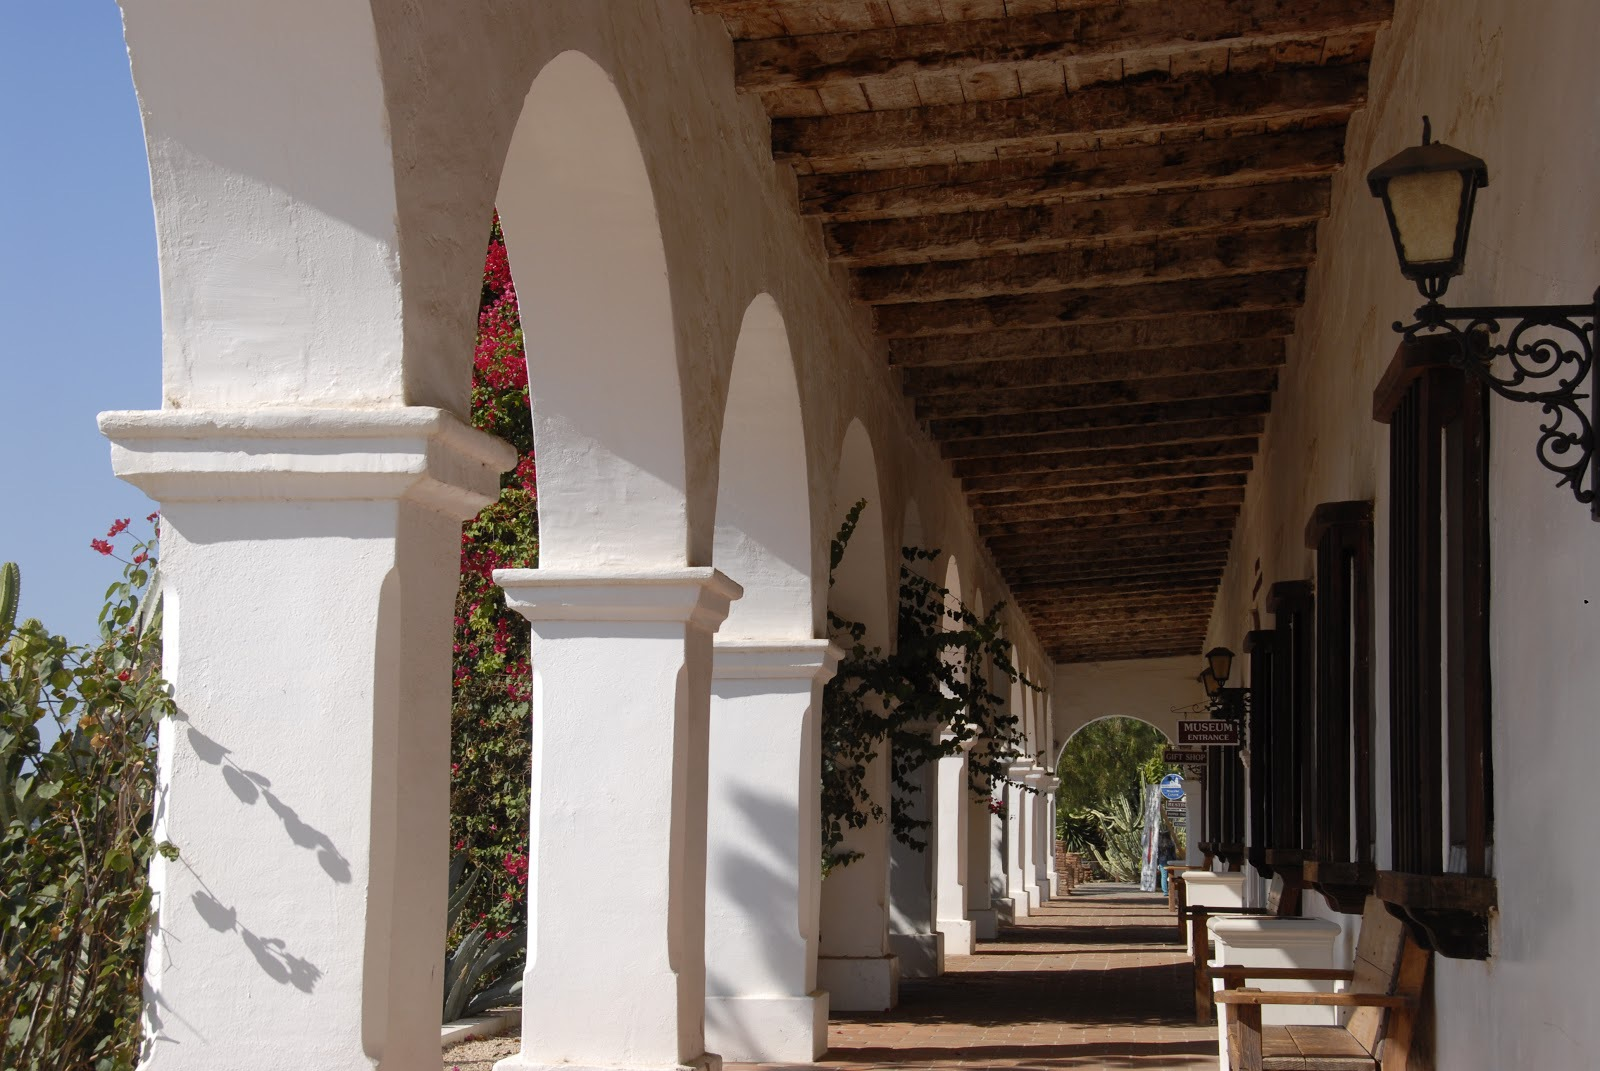 San Luis Rey Retreat Center